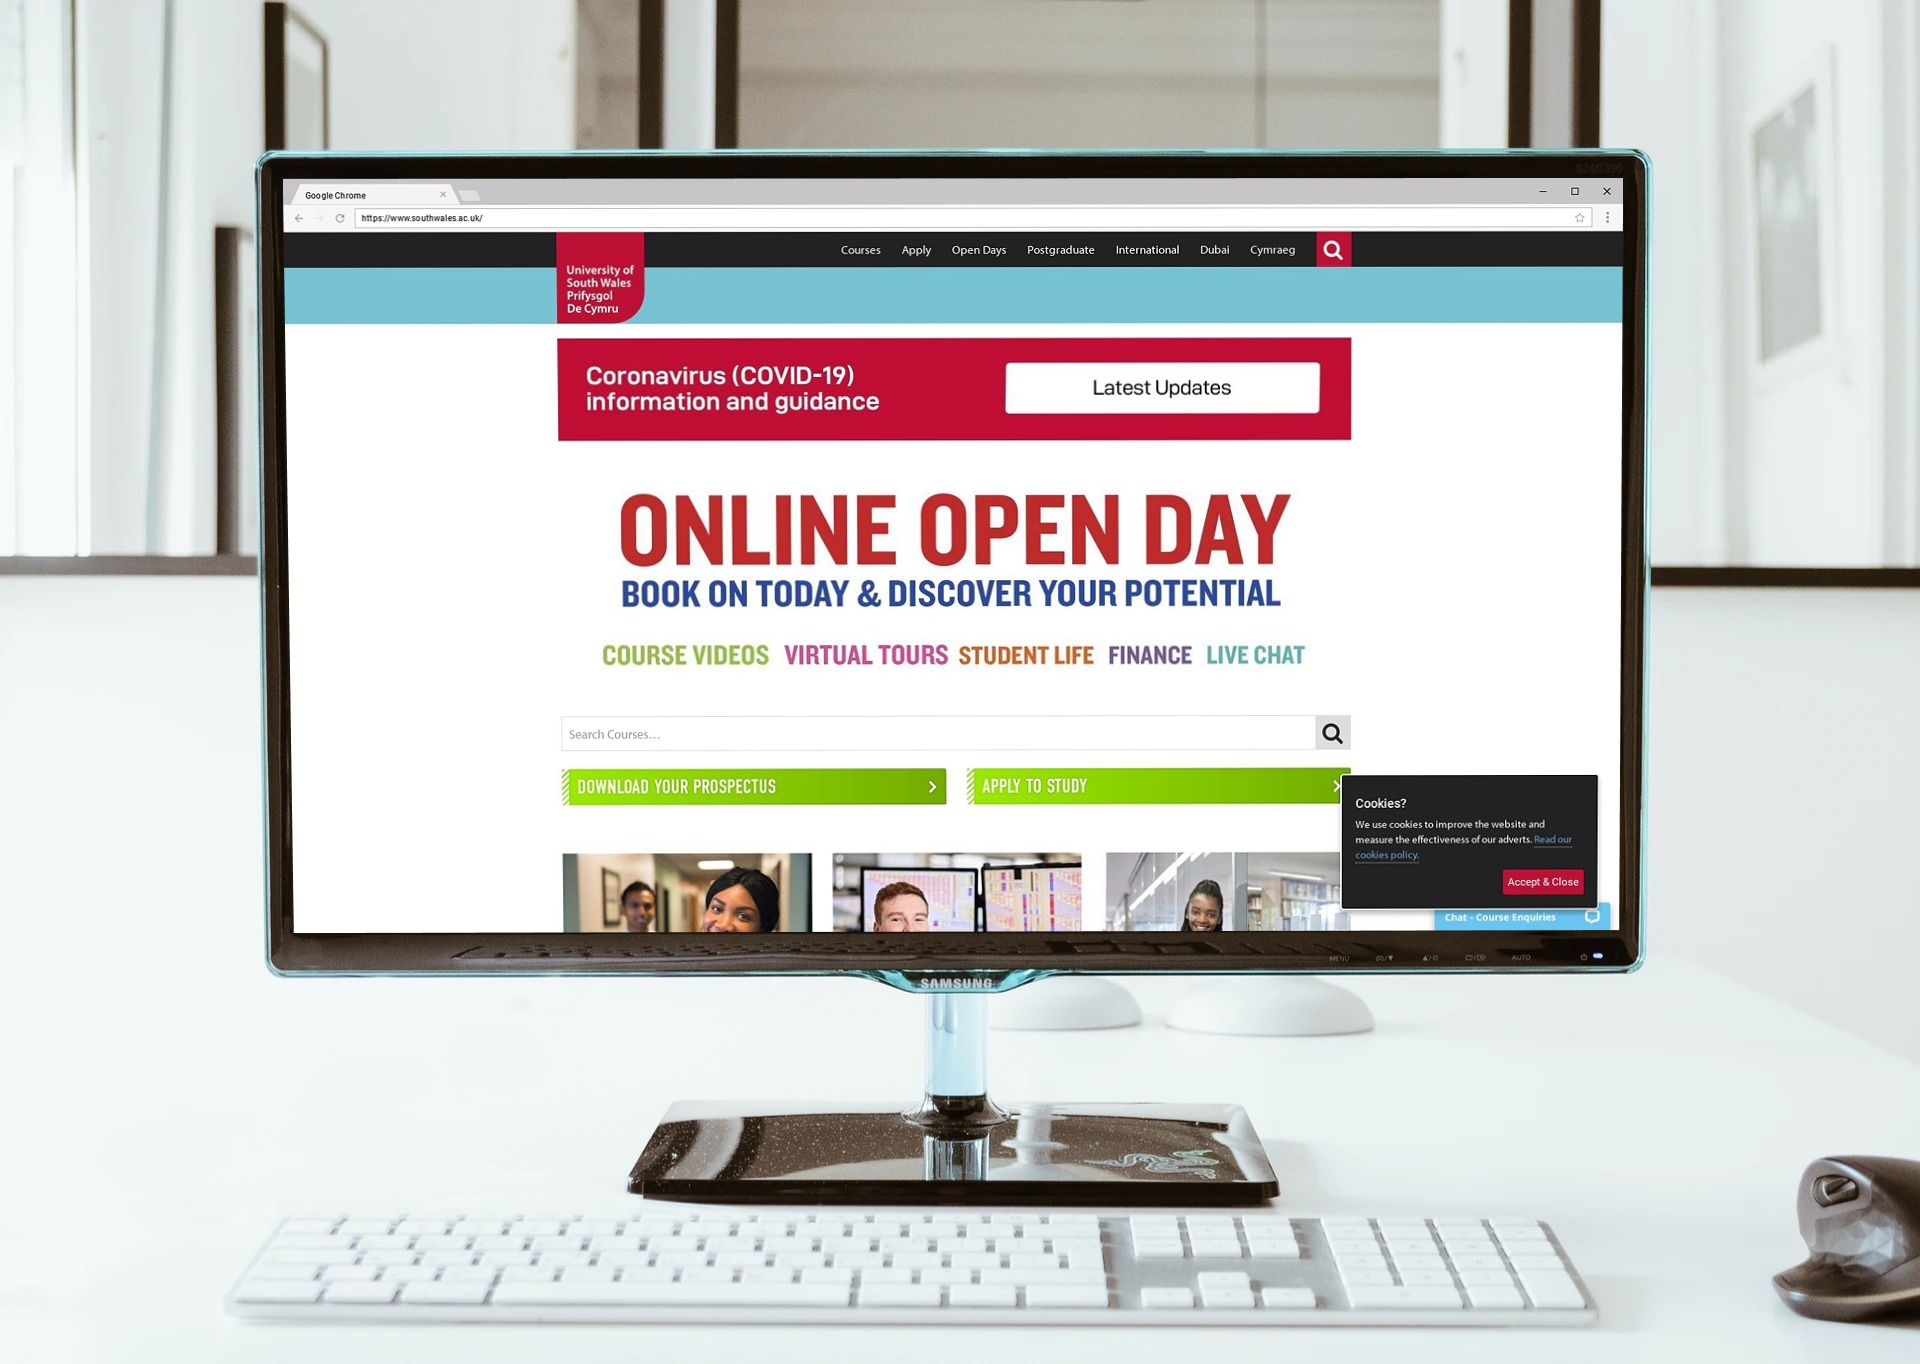 image of desktop screen, open on the university of south wales homepage. it features information on virtual open days at the university